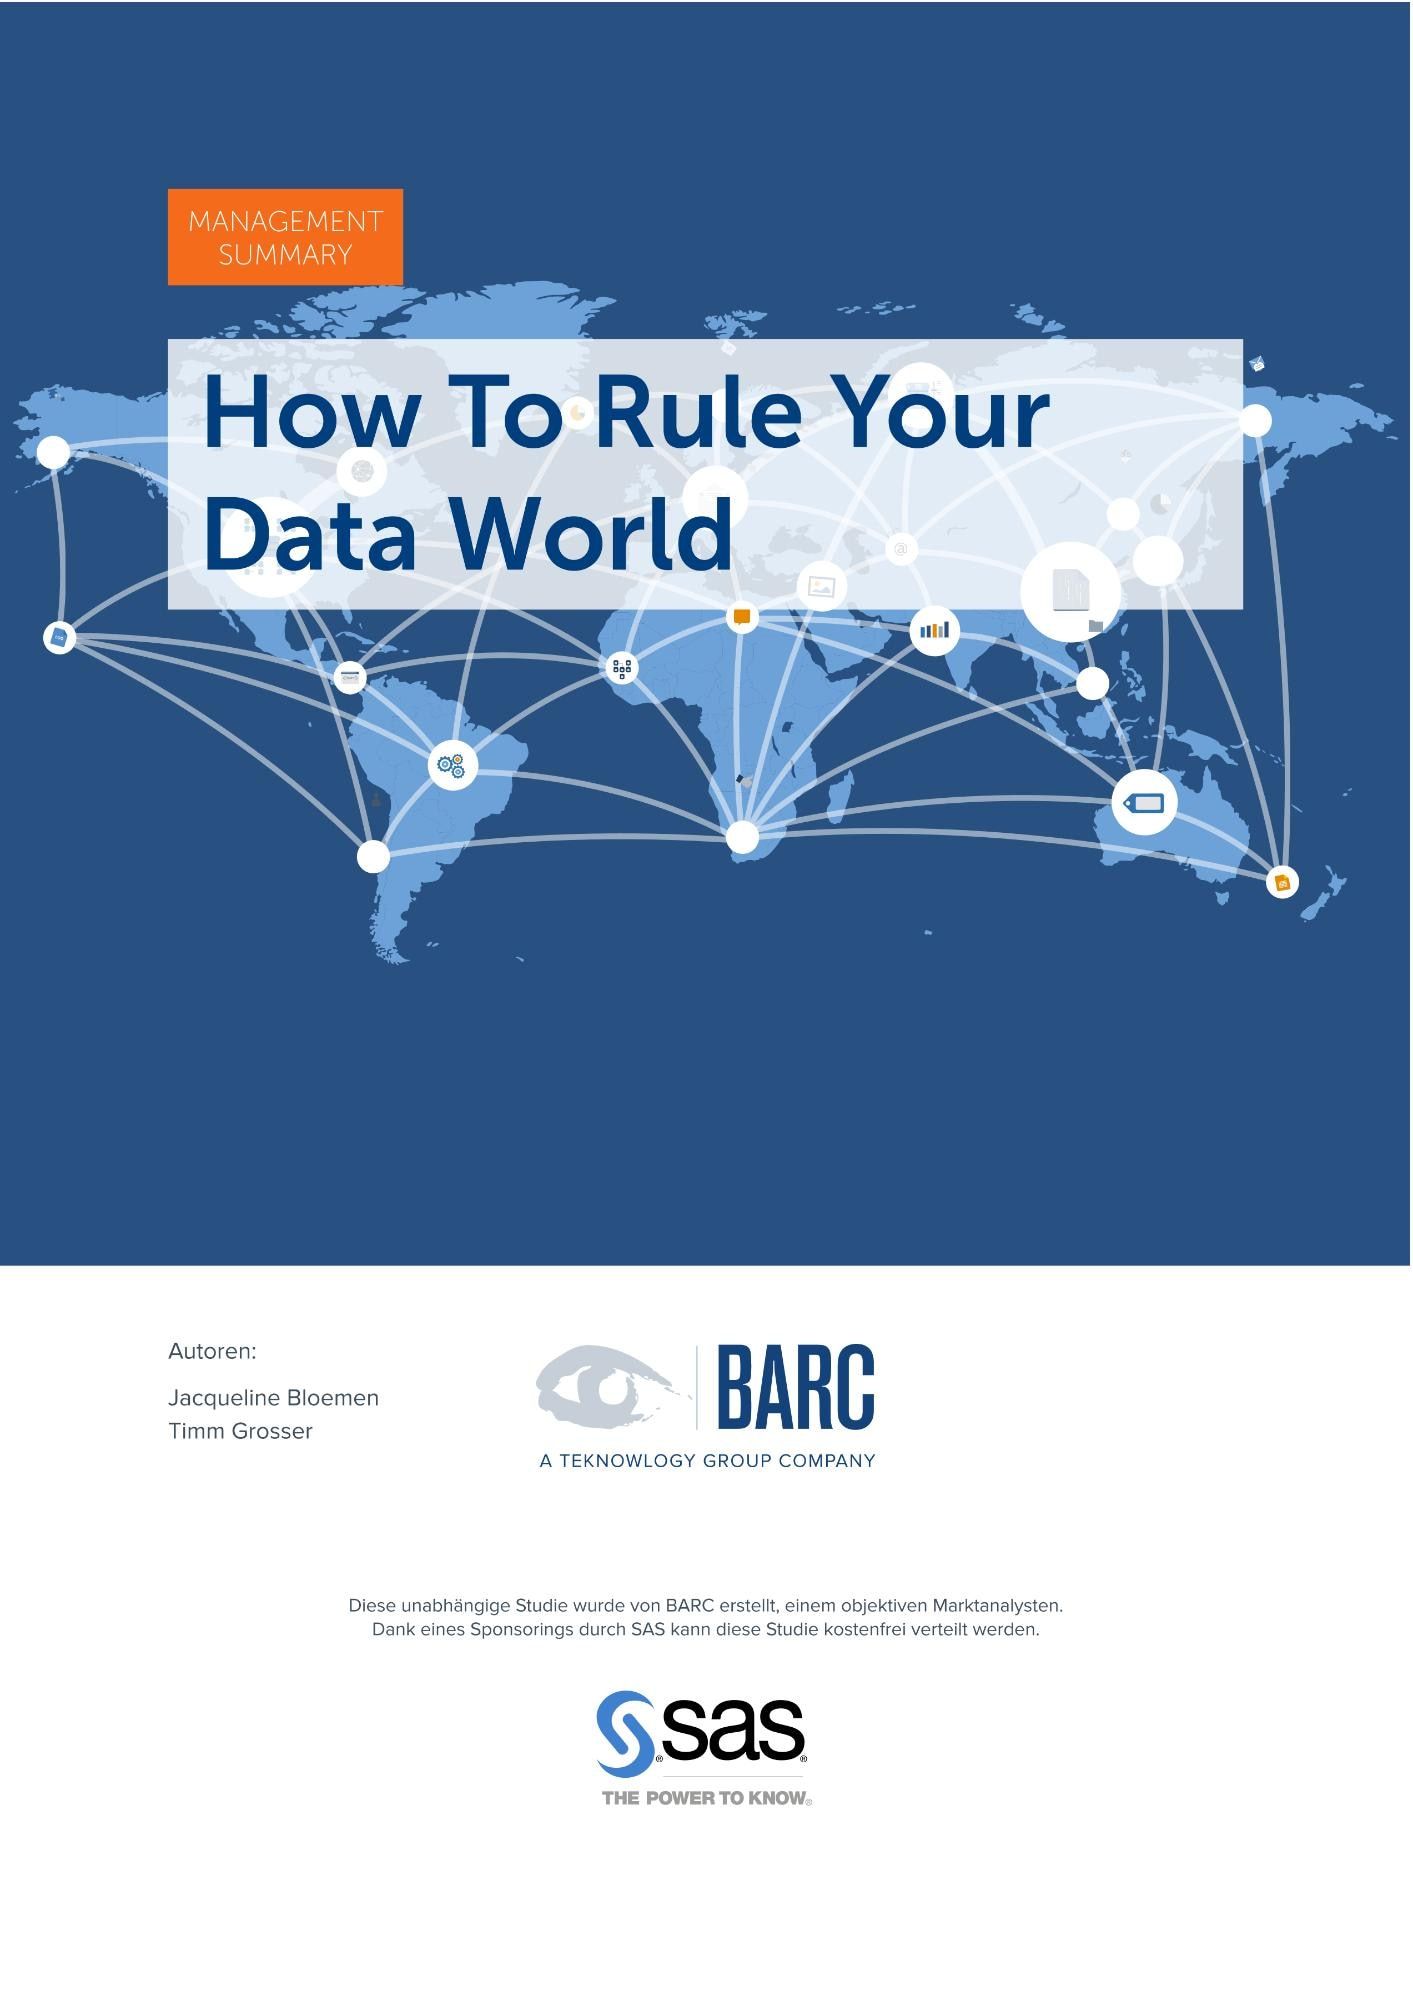 How To Rule Your Data World